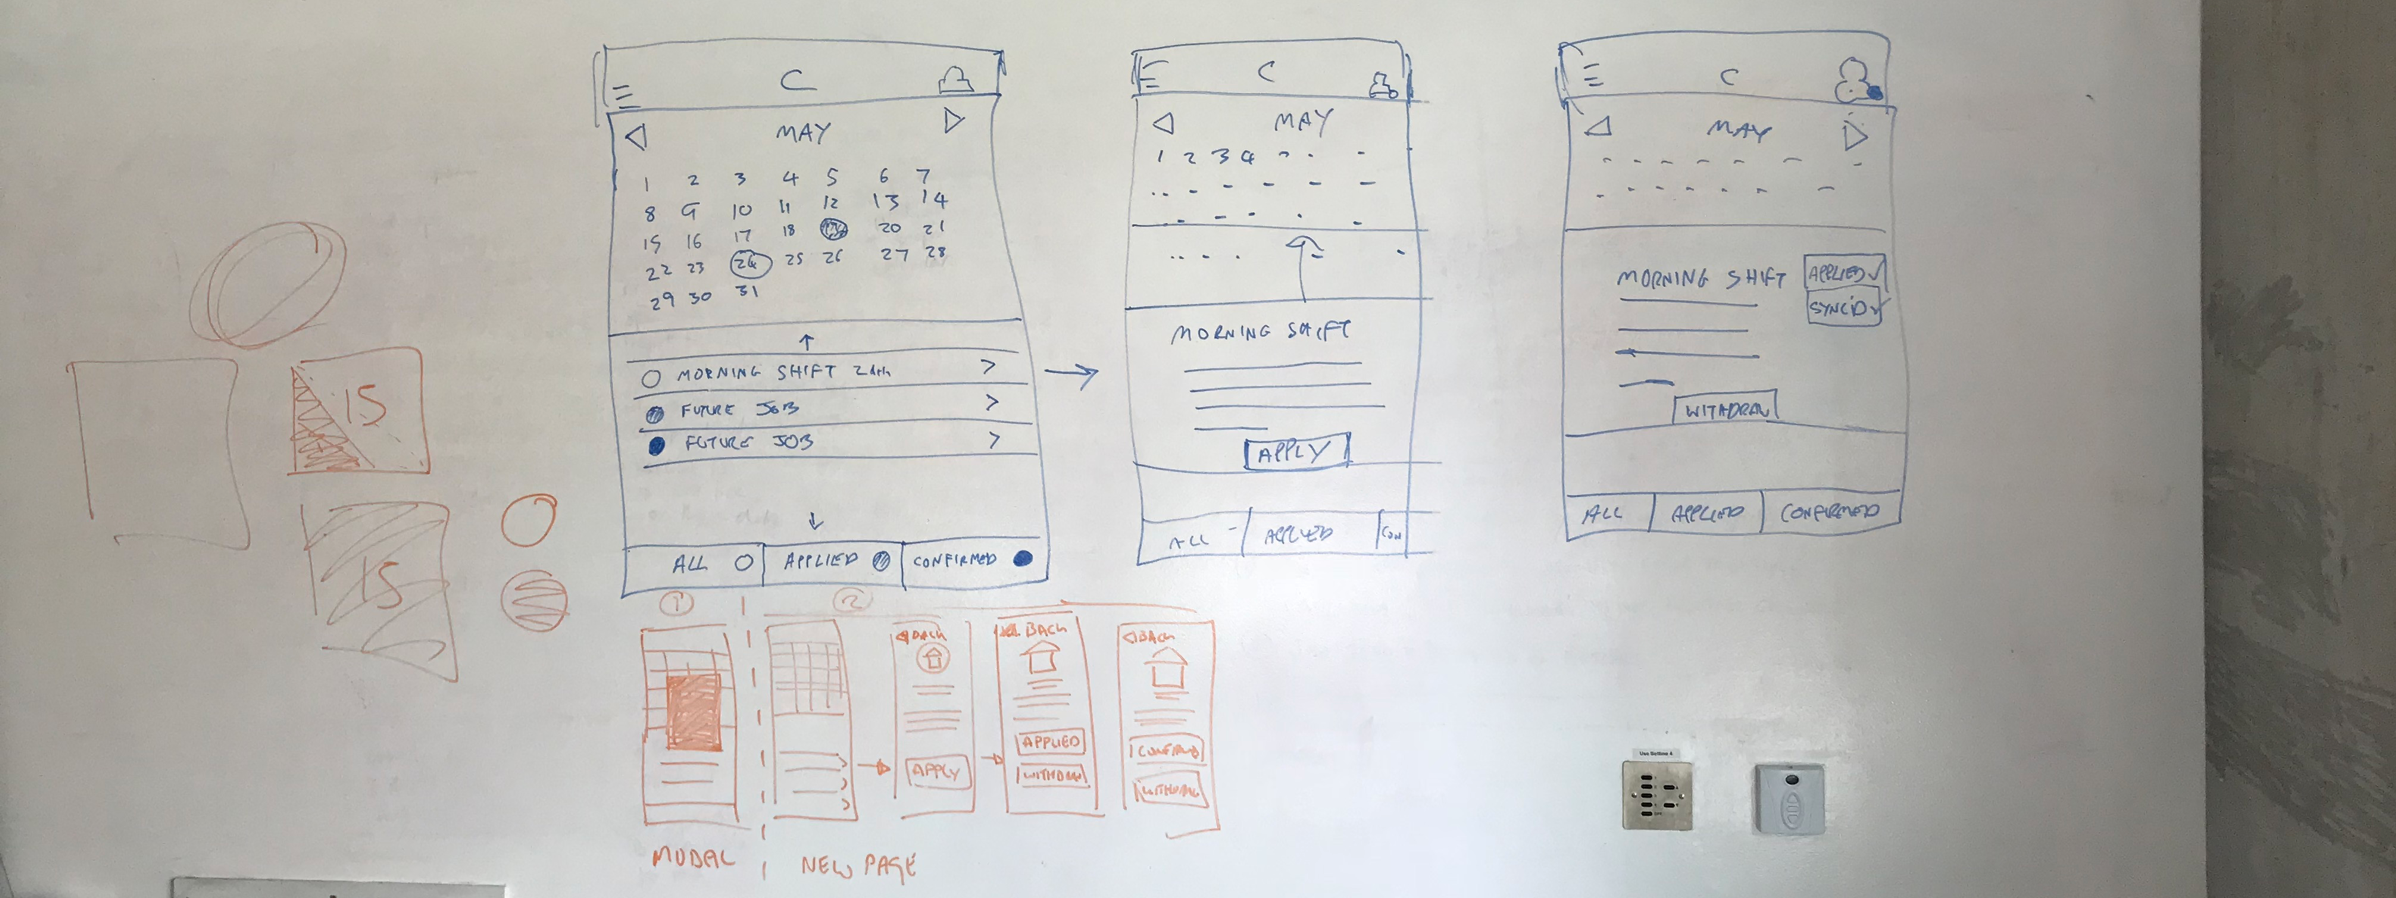 Three interface concepts for an iOS app drawn on a whiteboard